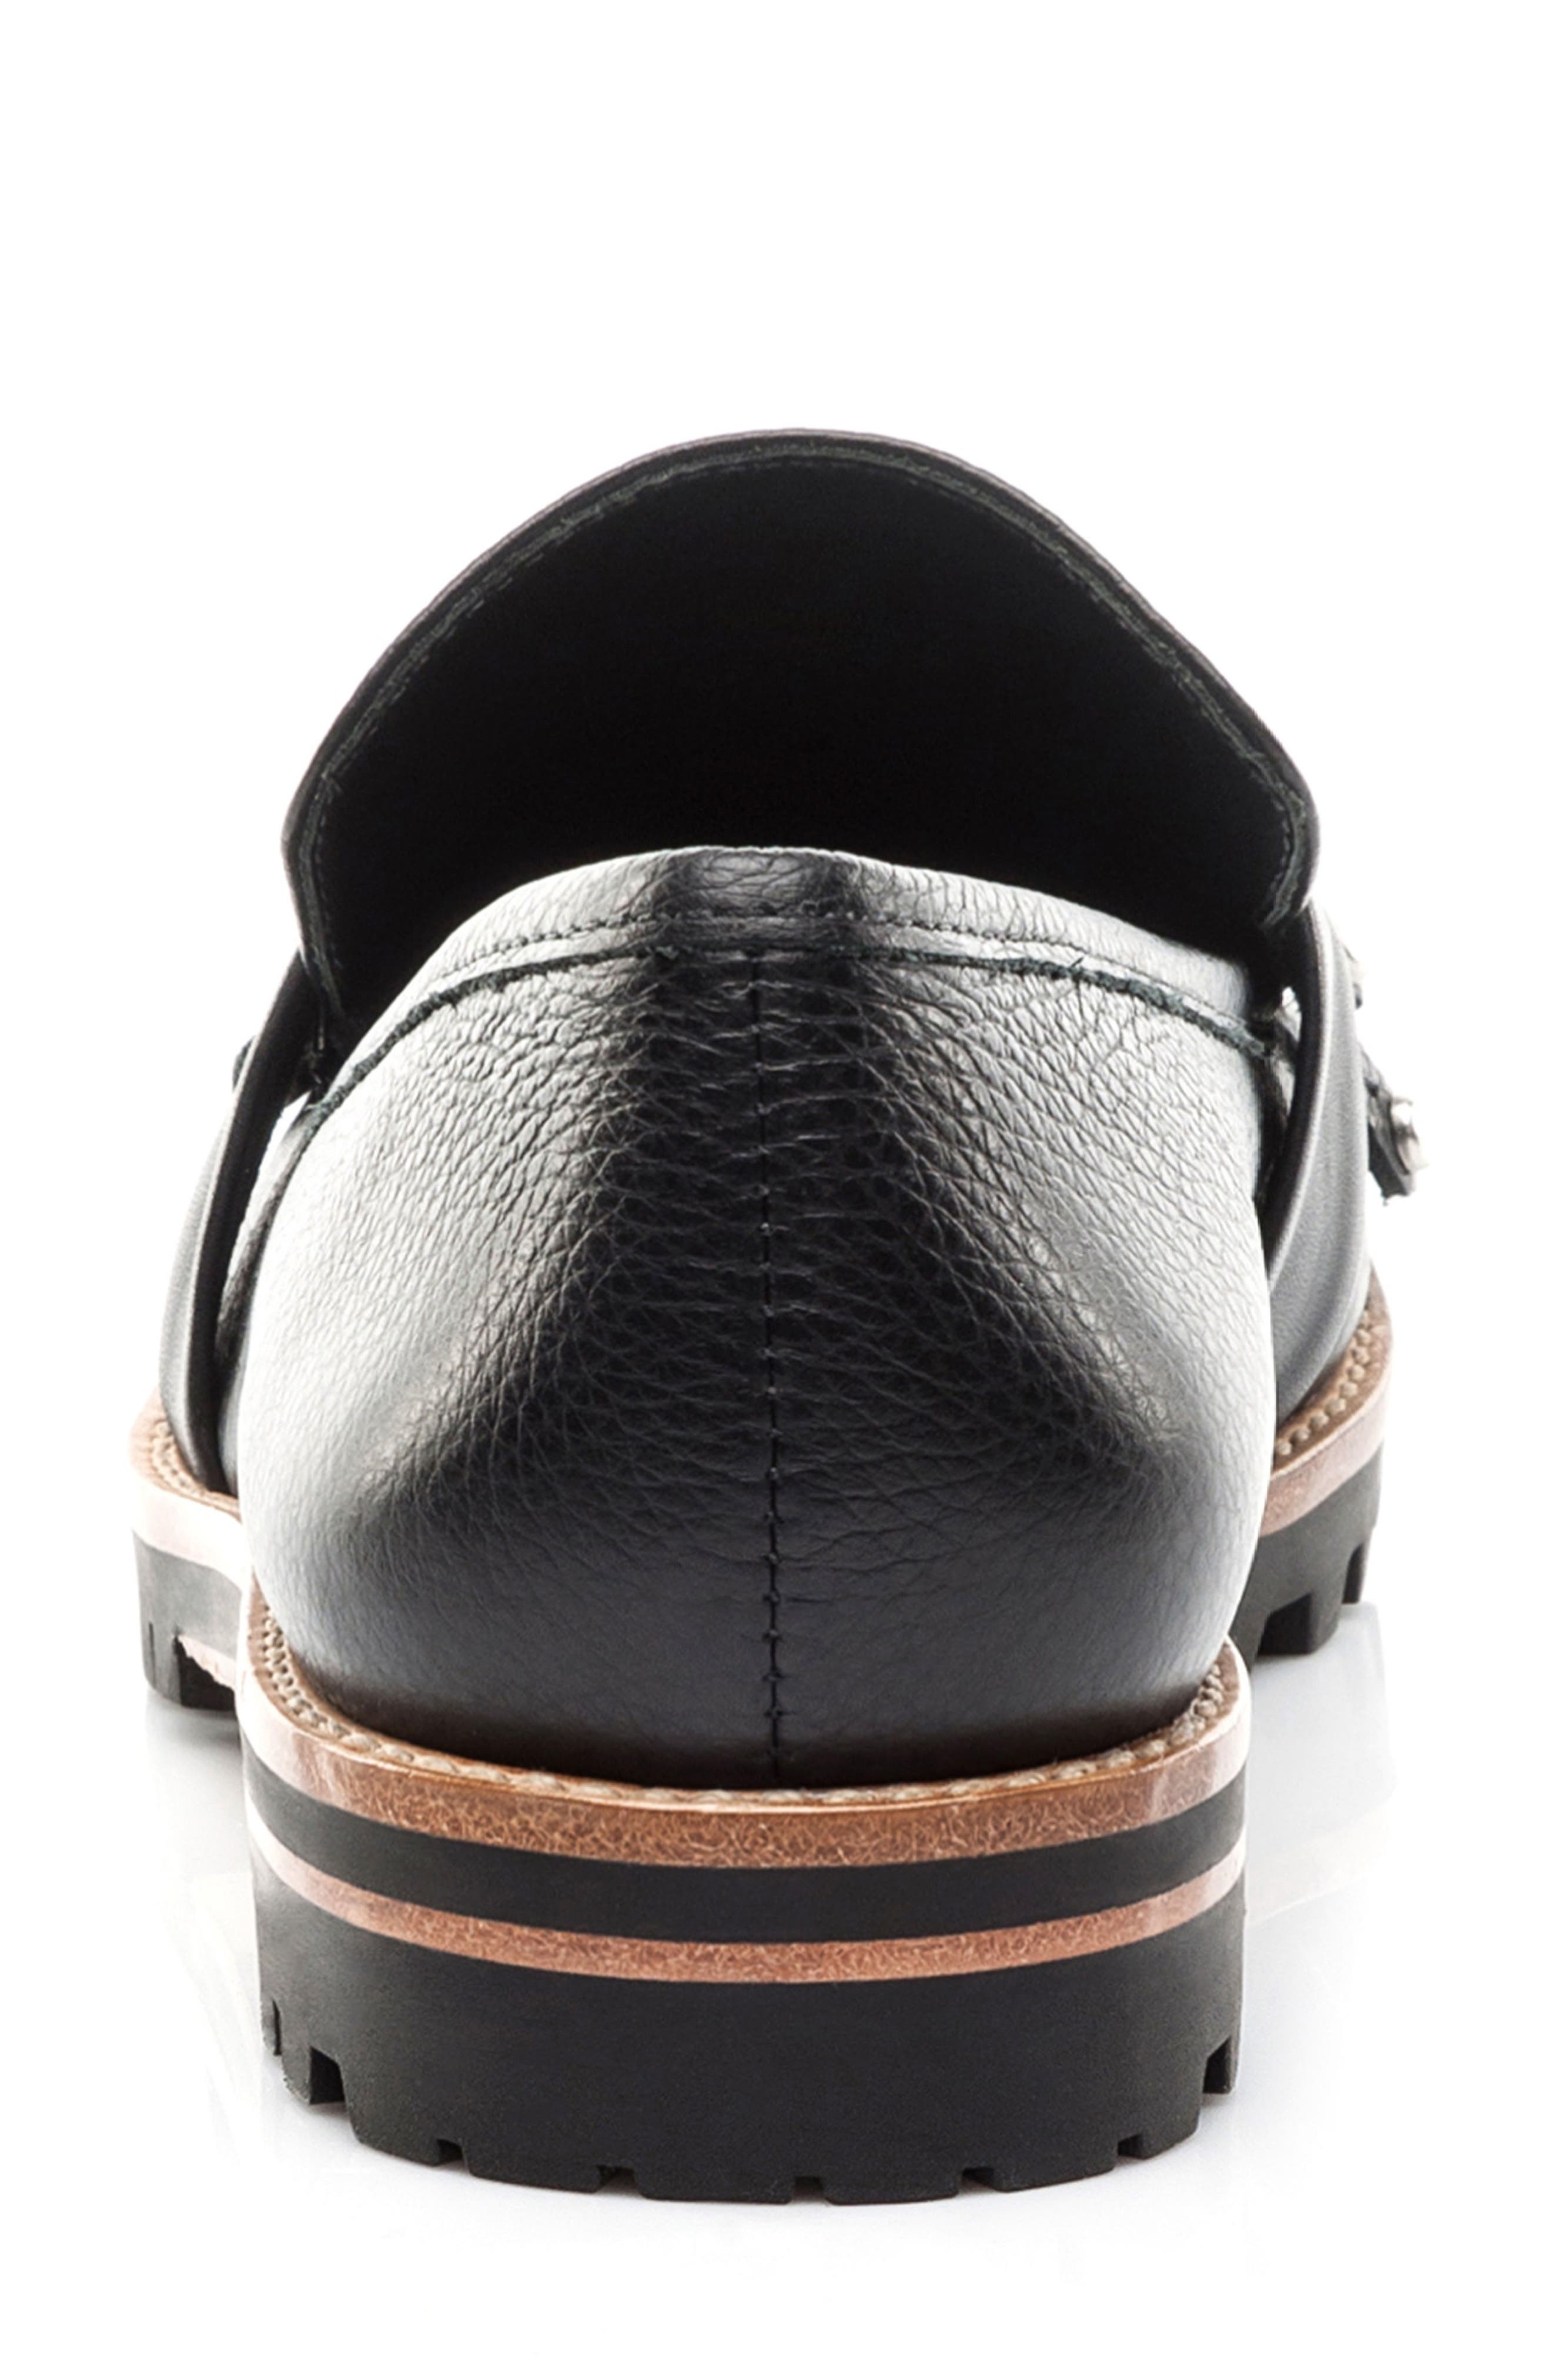 Olley Loafer,                             Alternate thumbnail 7, color,                             Black Leather